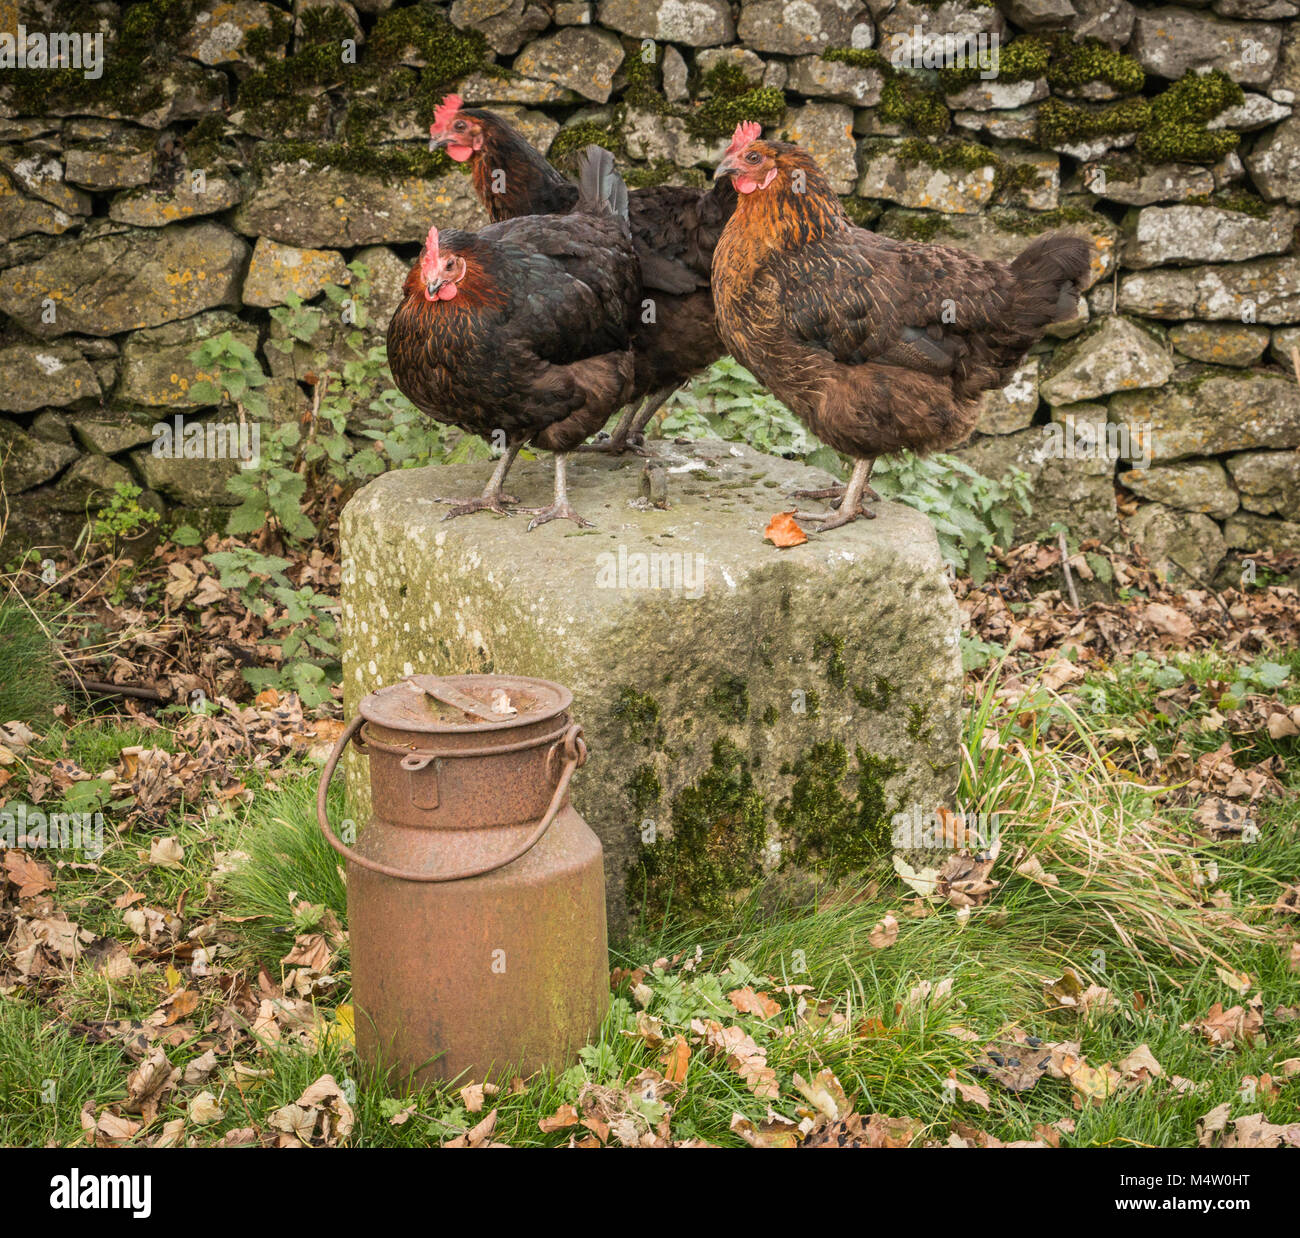 Three Hens and the scary milk churn - Stock Image